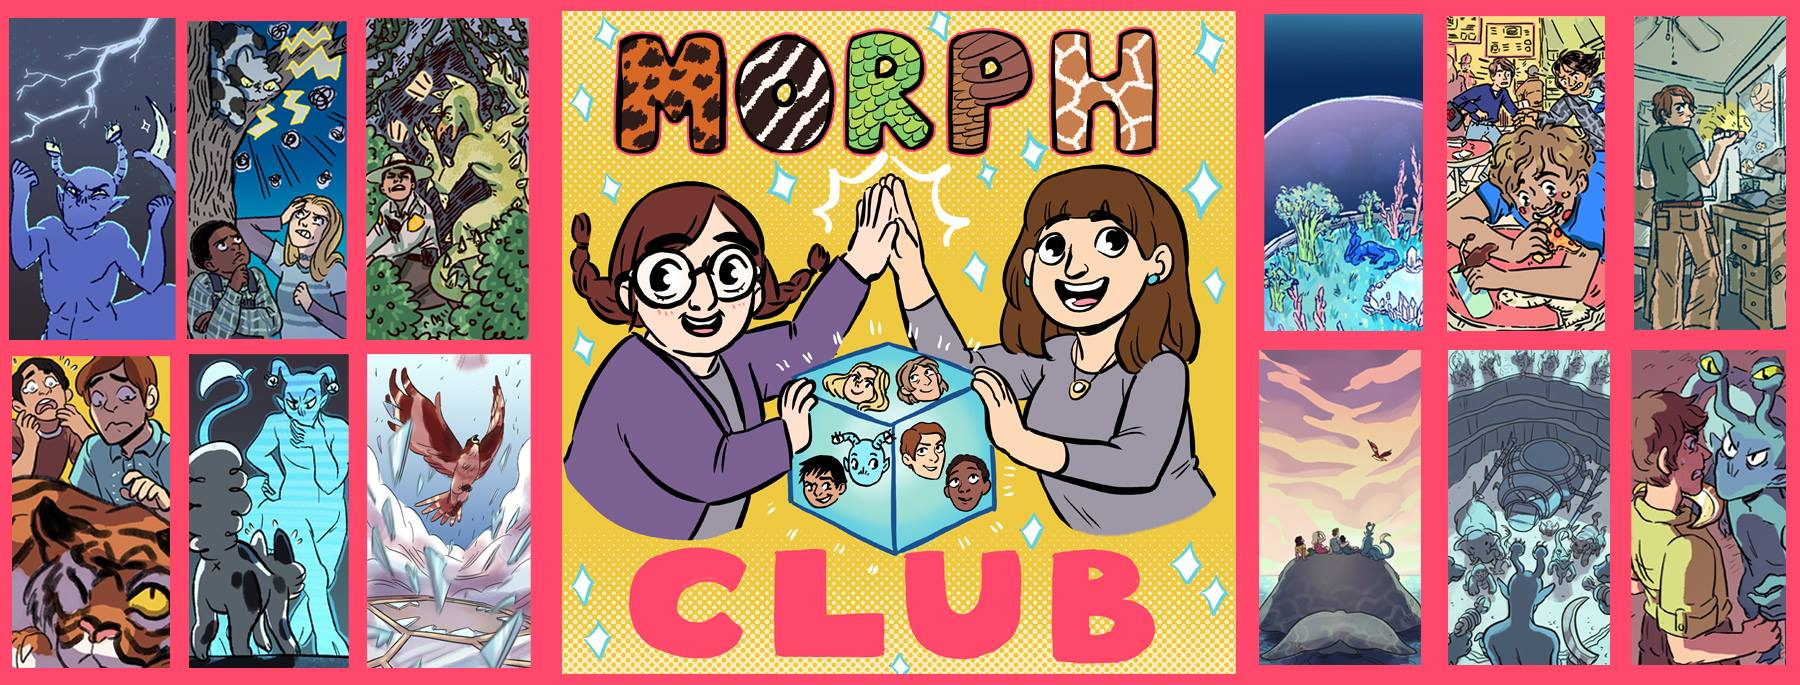 Morph Club Wallpaper Pack #1